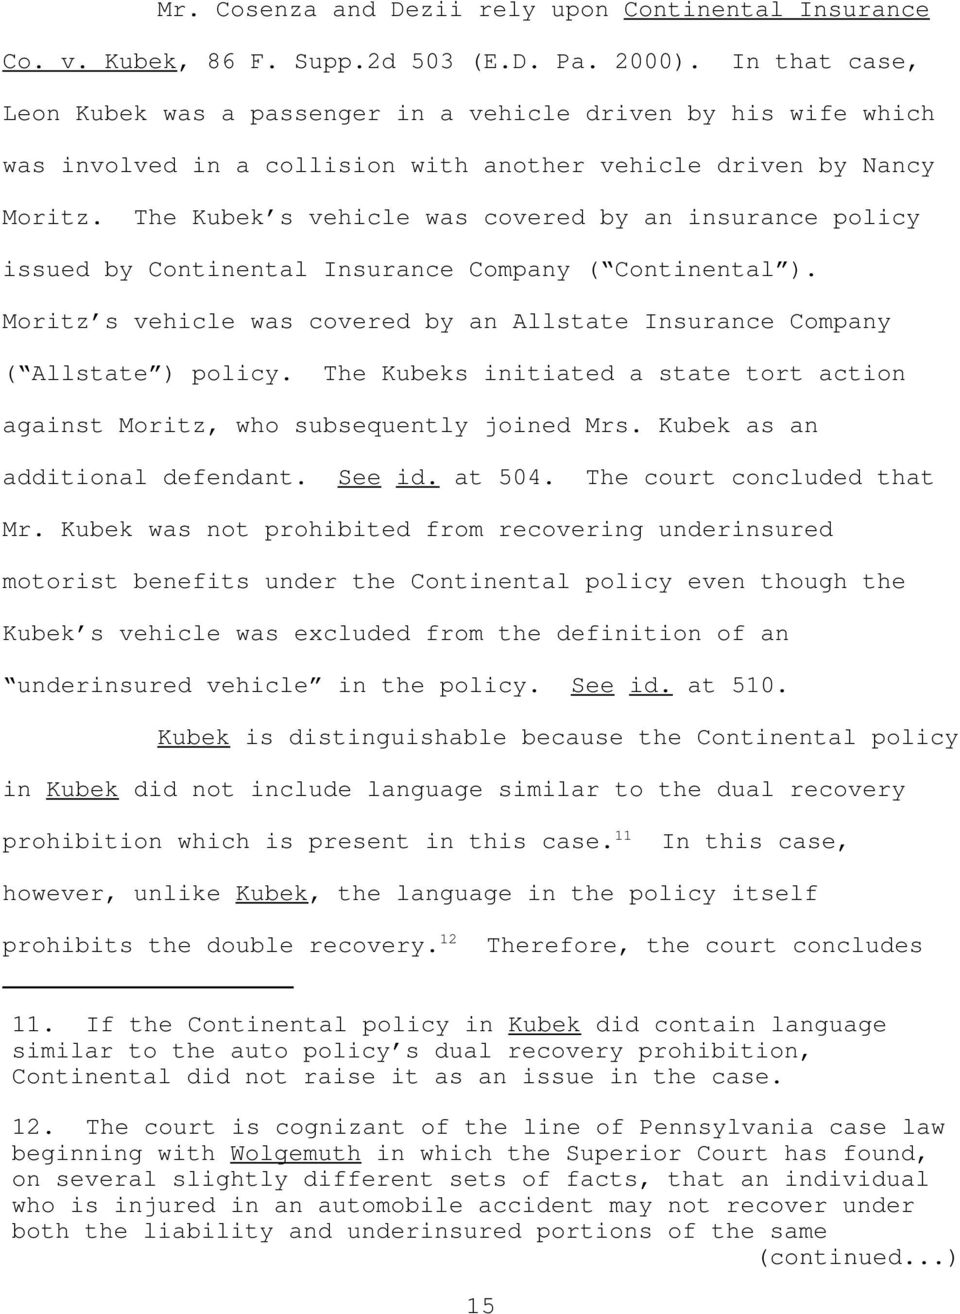 The Kubek s vehicle was covered by an insurance policy issued by Continental Insurance Company ( Continental ). Moritz s vehicle was covered by an Allstate Insurance Company ( Allstate ) policy.